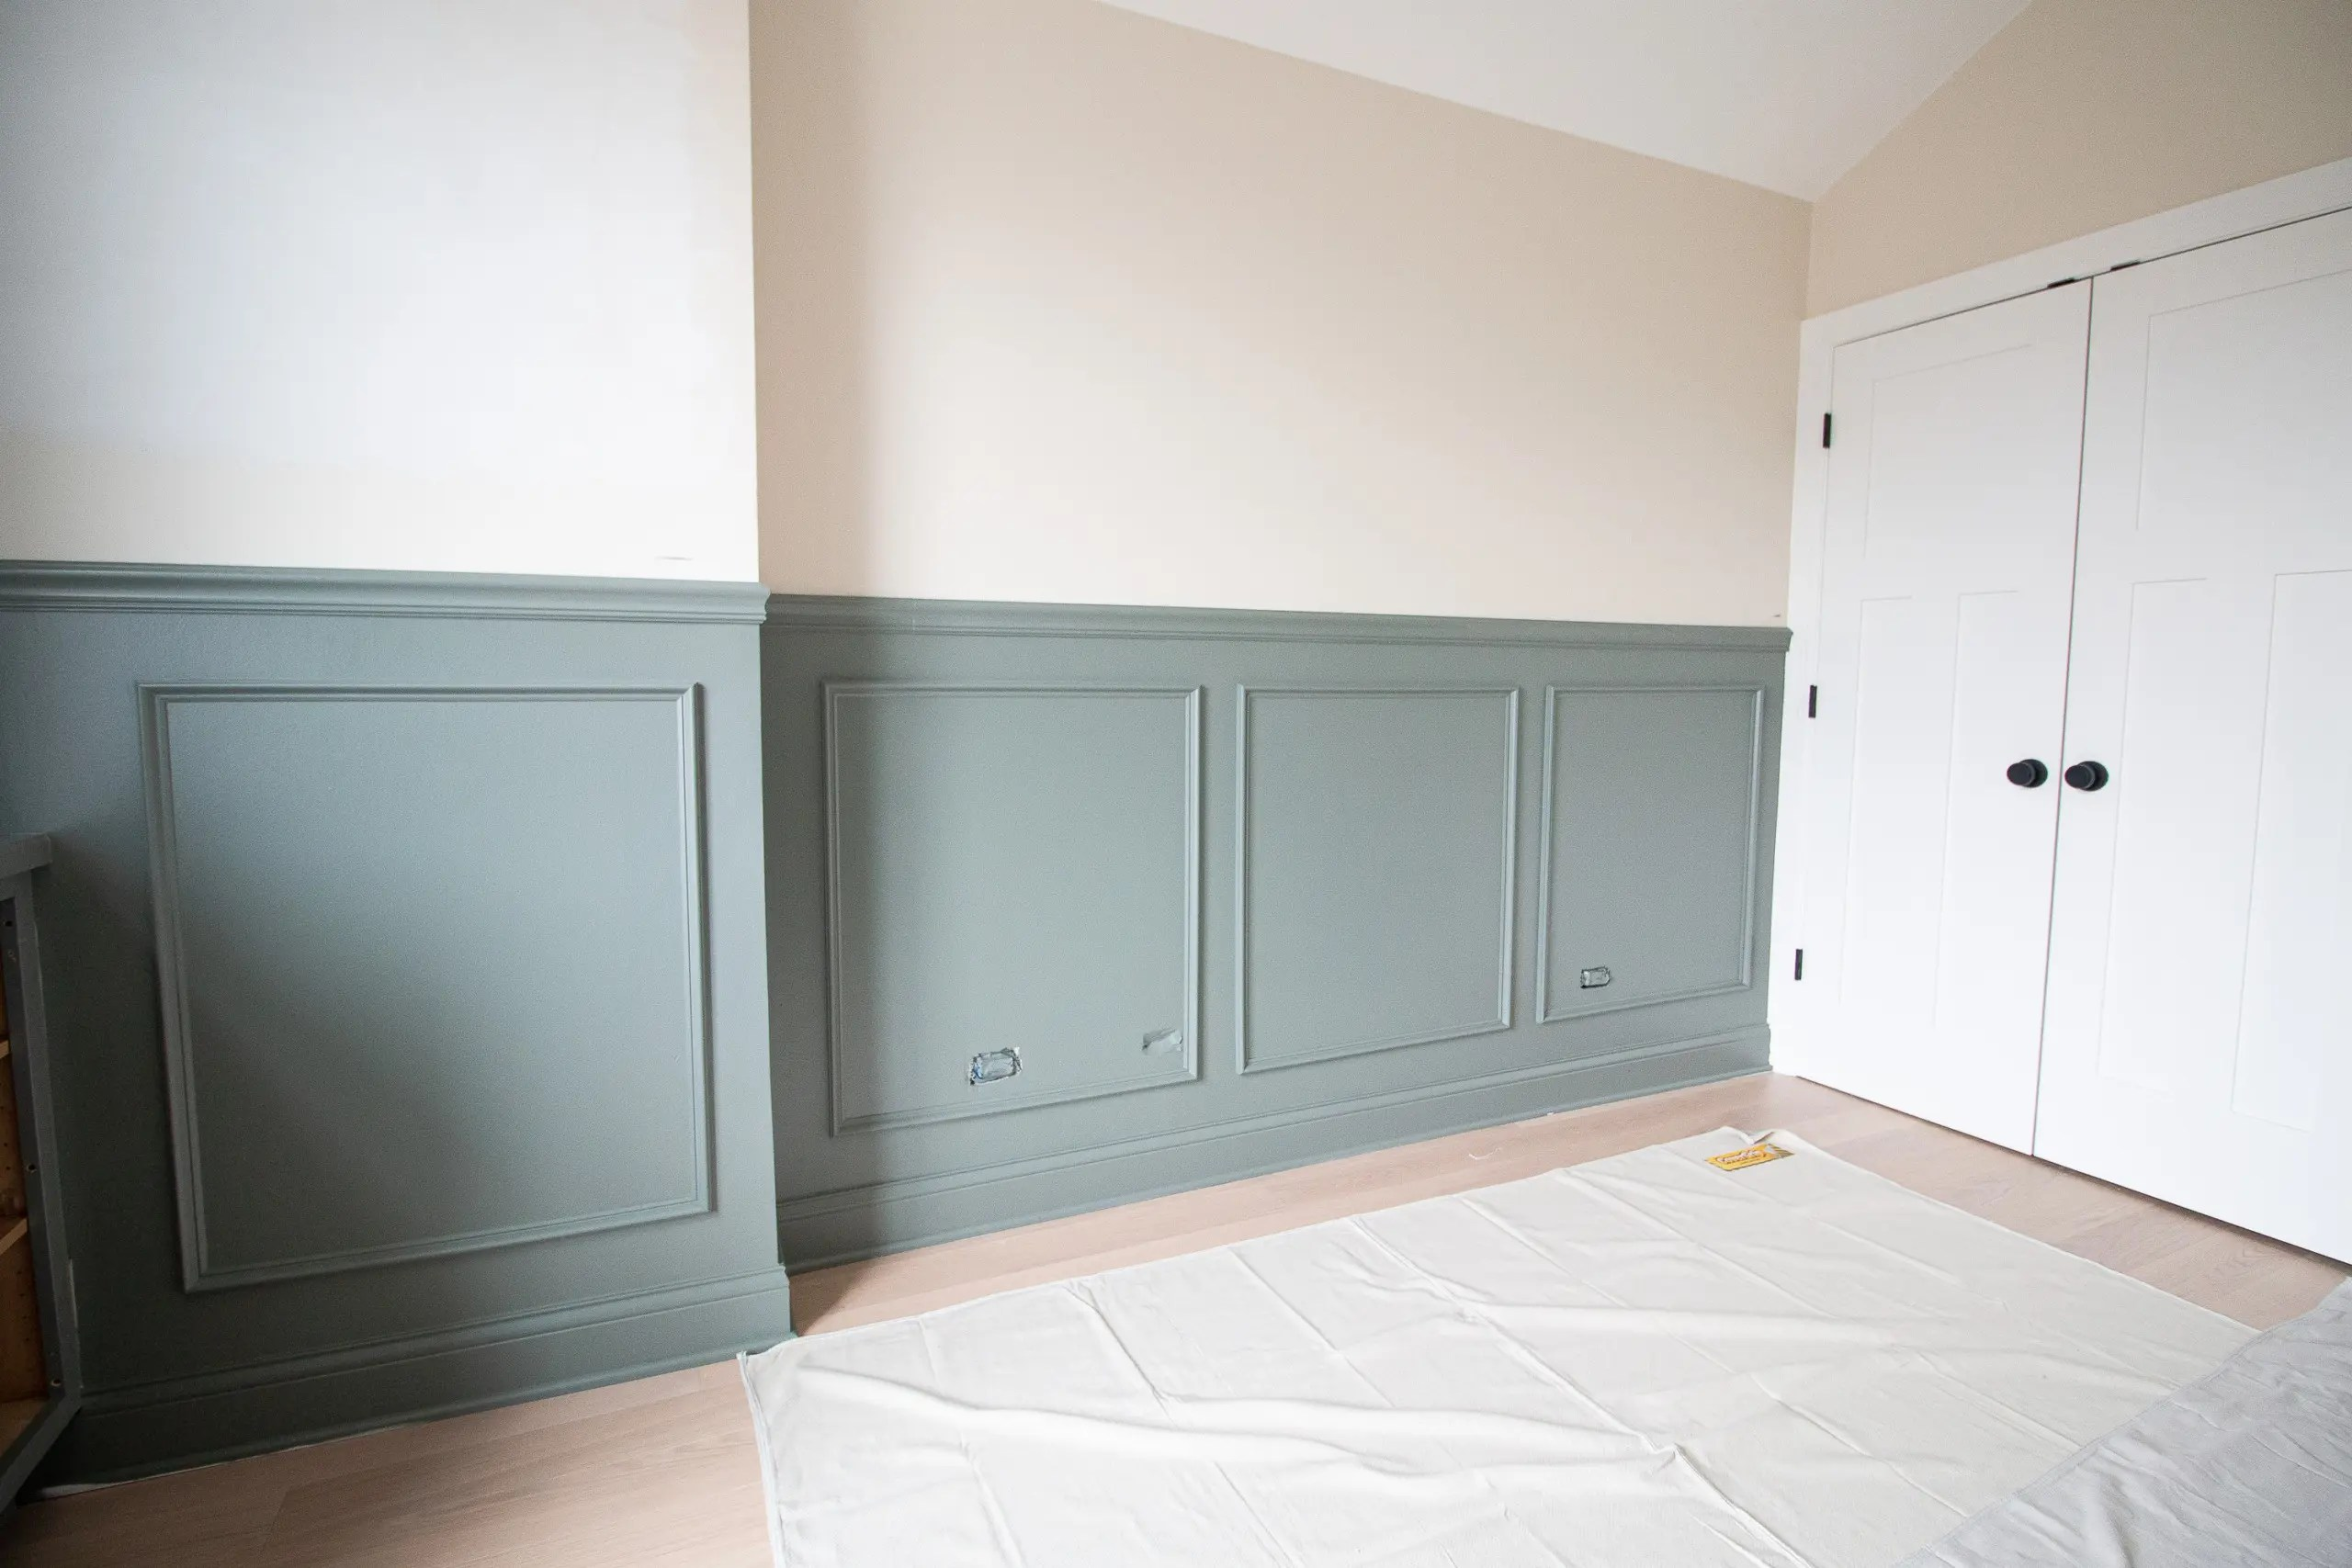 How To Add Chair Rail Picture Frame Molding The Diy Playbook